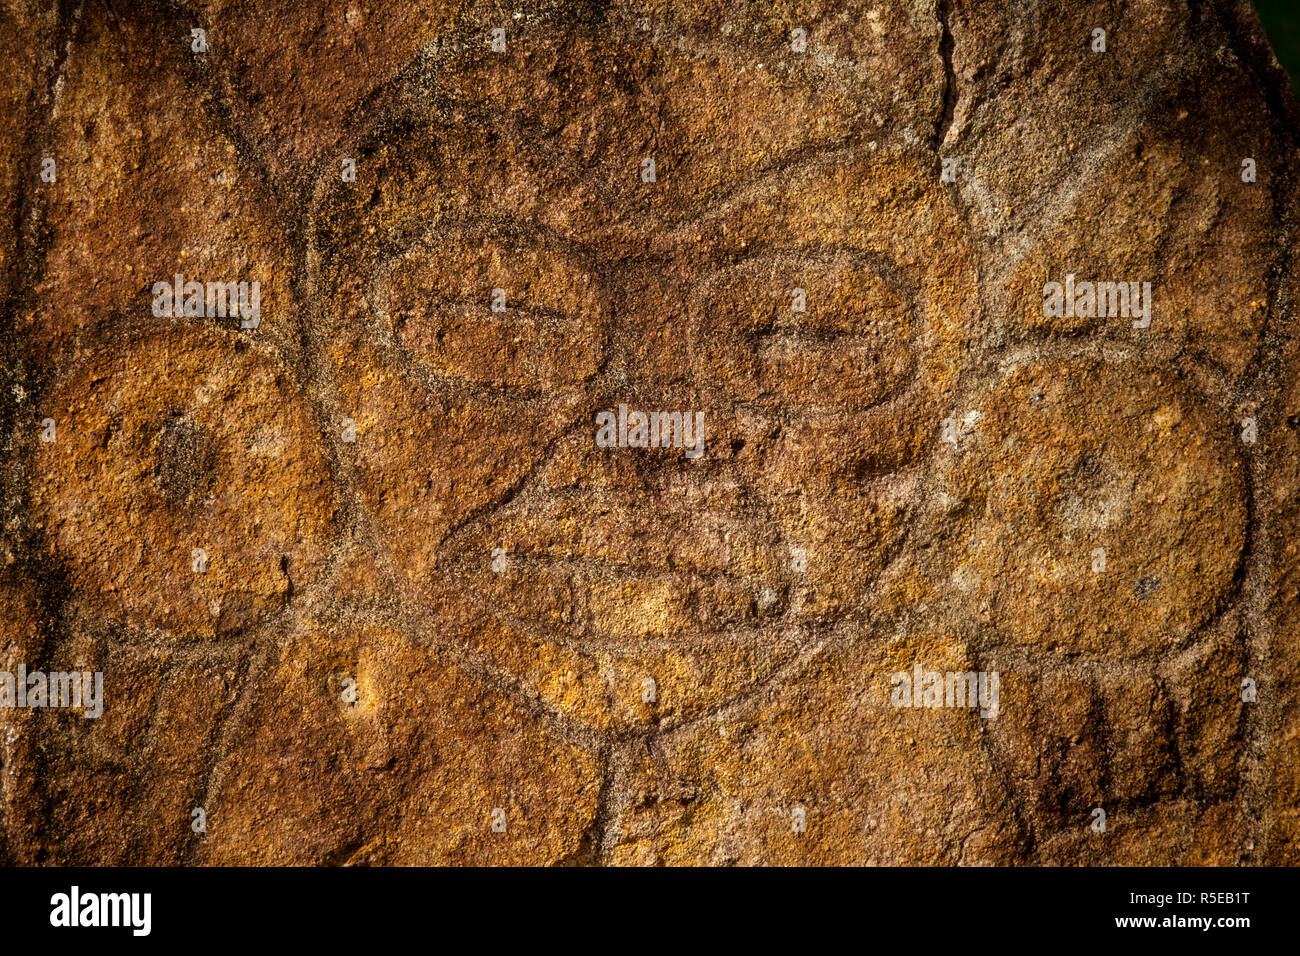 Puerto Rico, North Coast, Karst Country, Utuado, Parque Ceremonial Indigena de Caguana, monoliths at ancient Taino people's ceremonial site - Stock Image